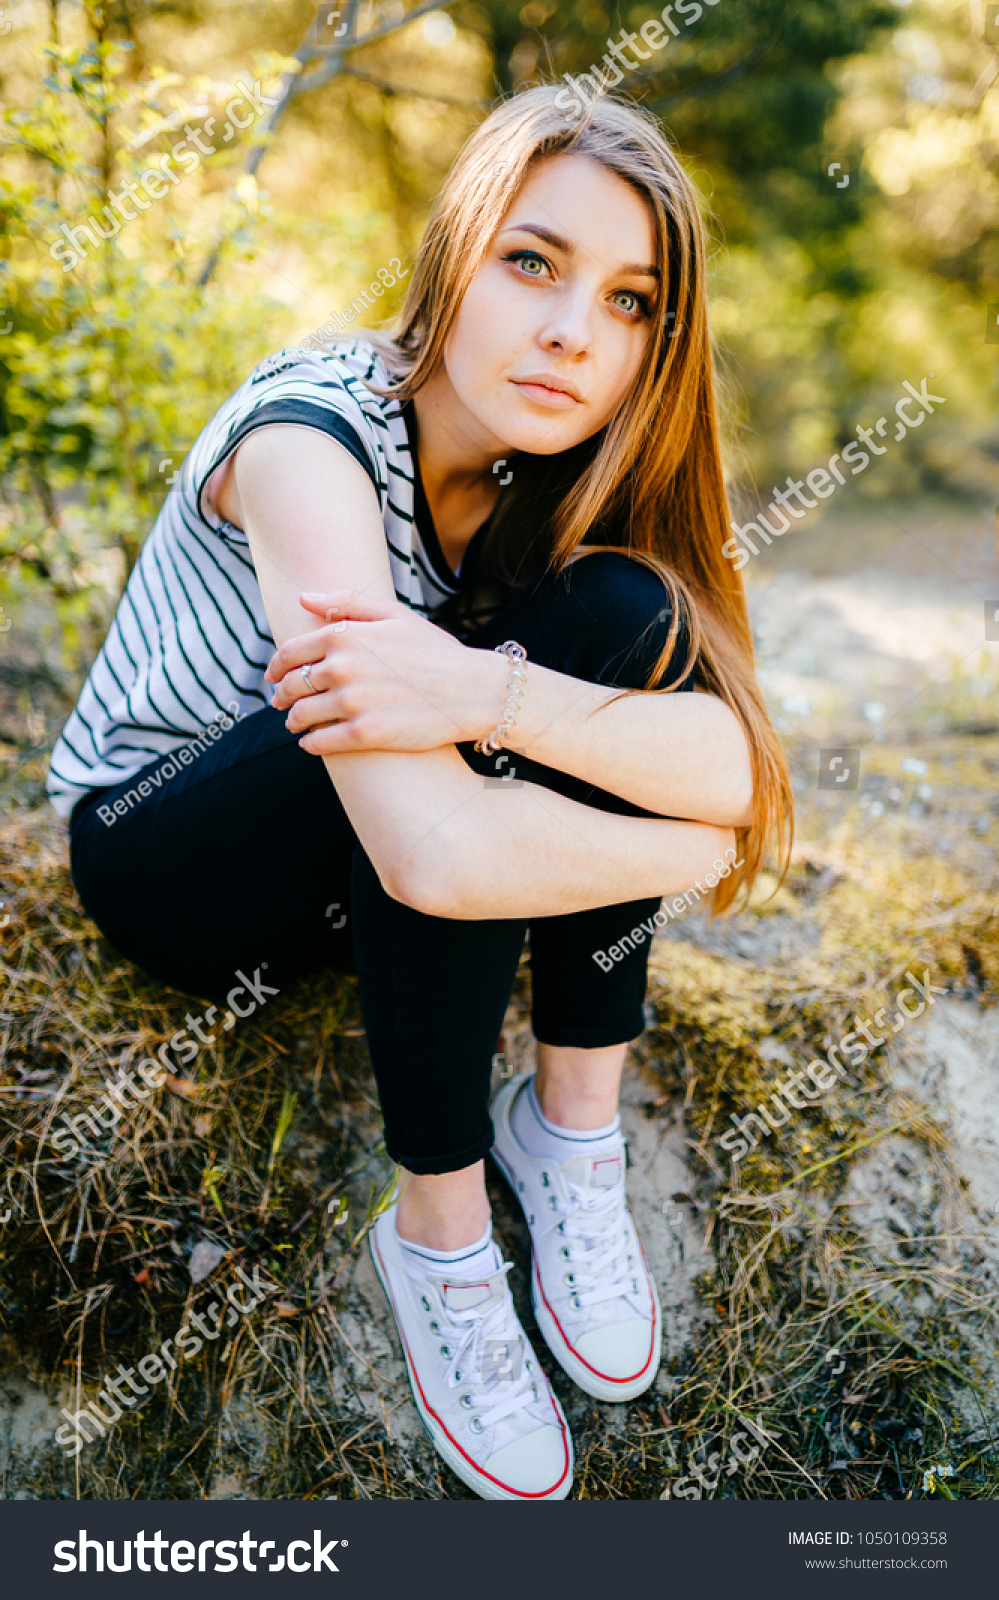 490616bdd550 Fashionable stylish teen with passionate expressive face posing at camera.  Blue eyed lovely fabulous brunette woman relaxing in summer wonderland -  Image